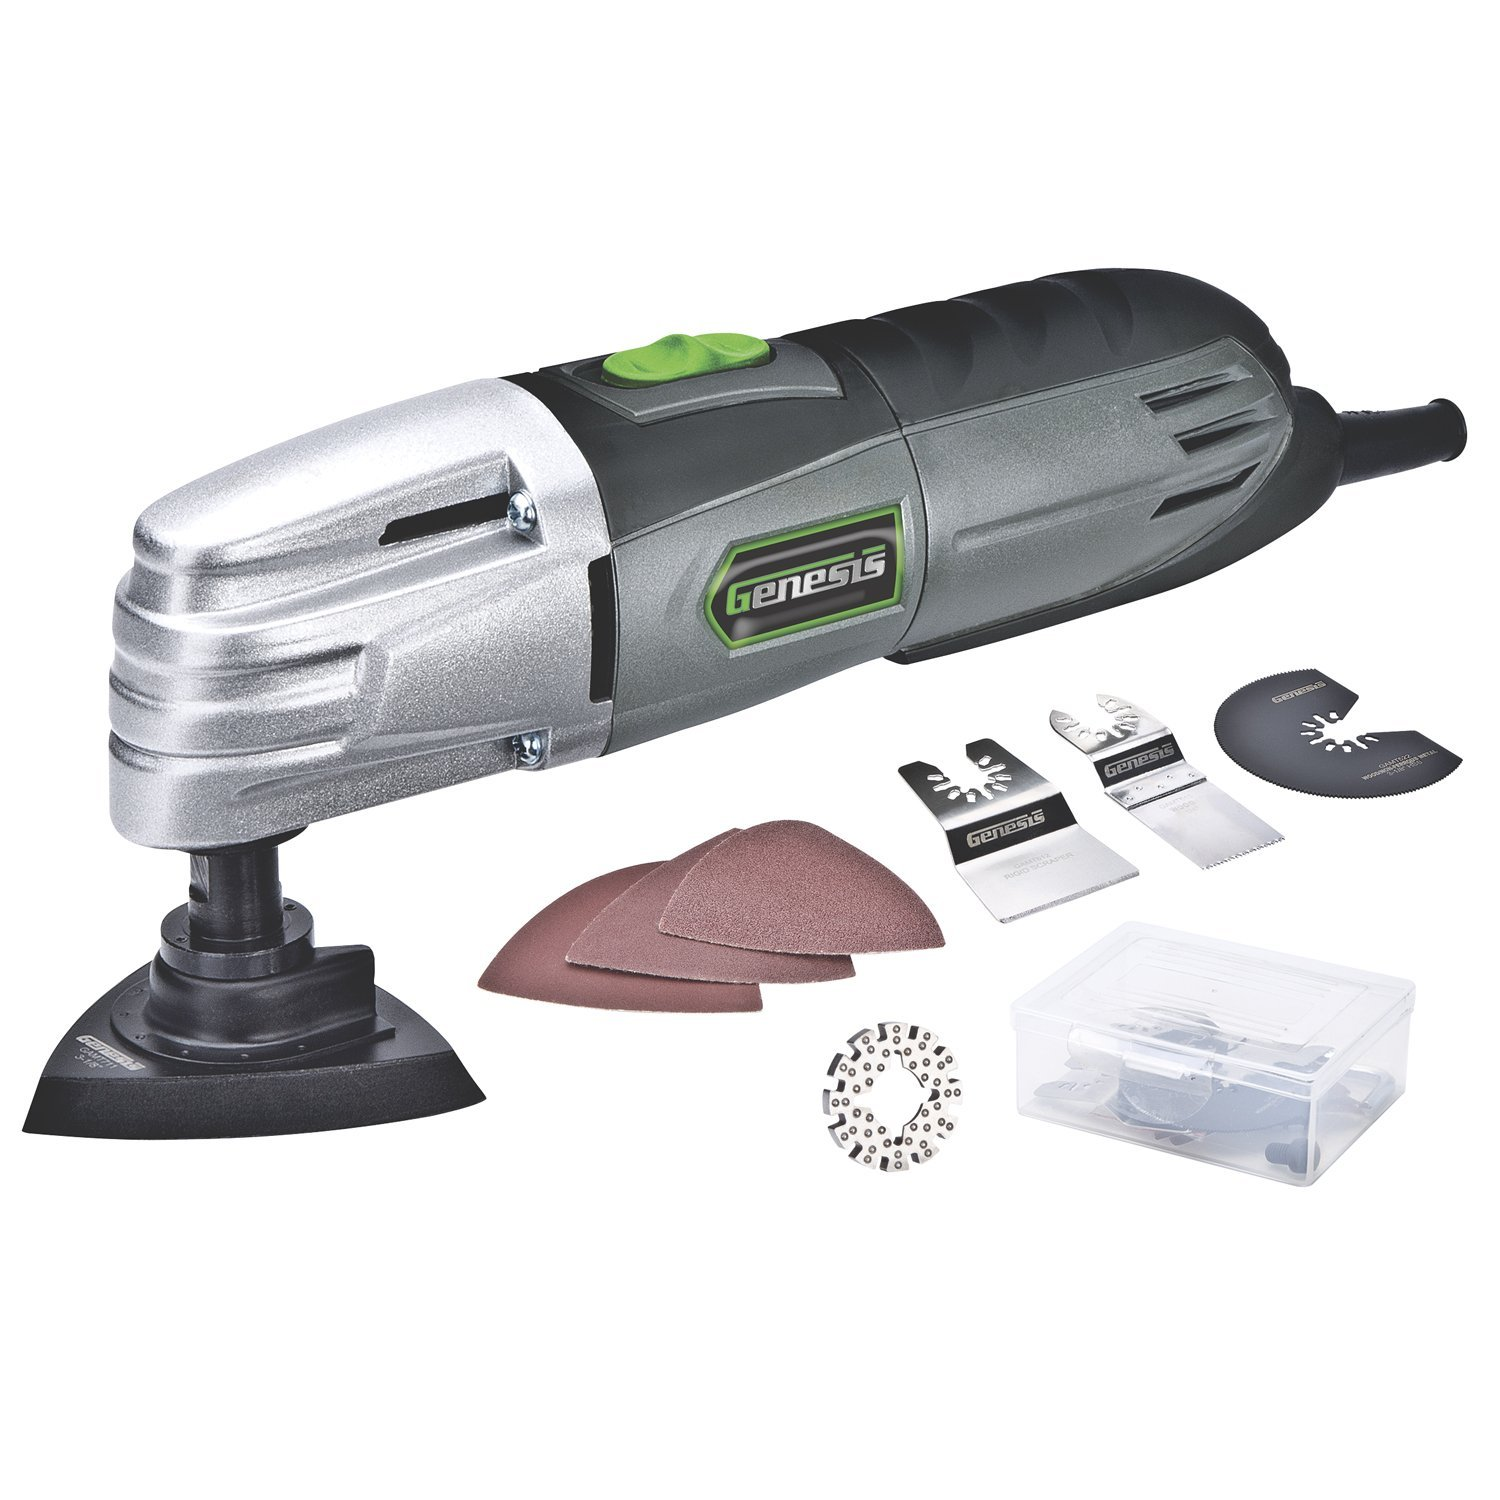 Genesis Multi-Purpose Oscillating Tool